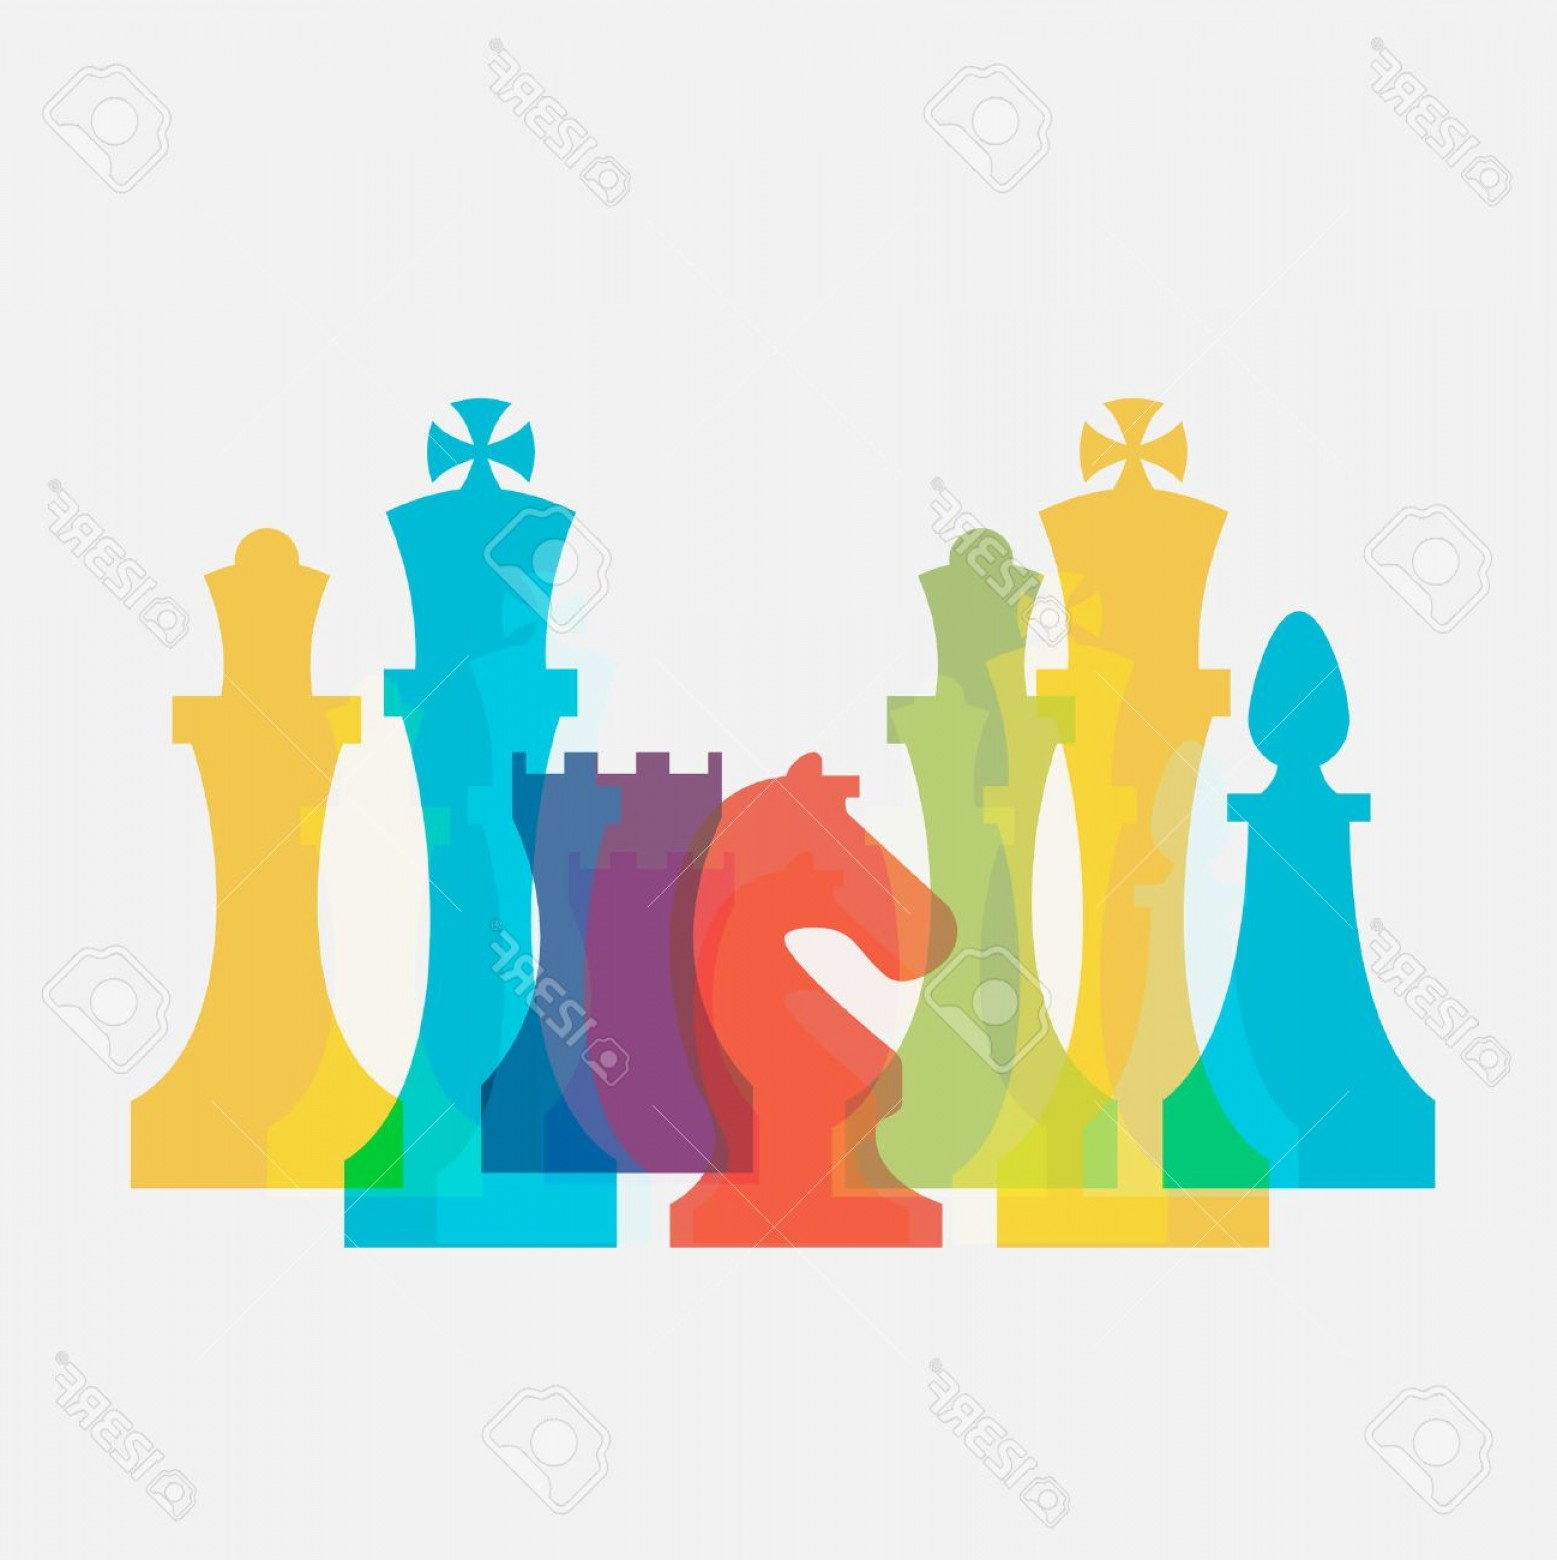 Chess Vector Background: Photostock Vector Chess Pieces Business Sign Corporate Identity Template For Chess Club Or Chess School Standard Chess